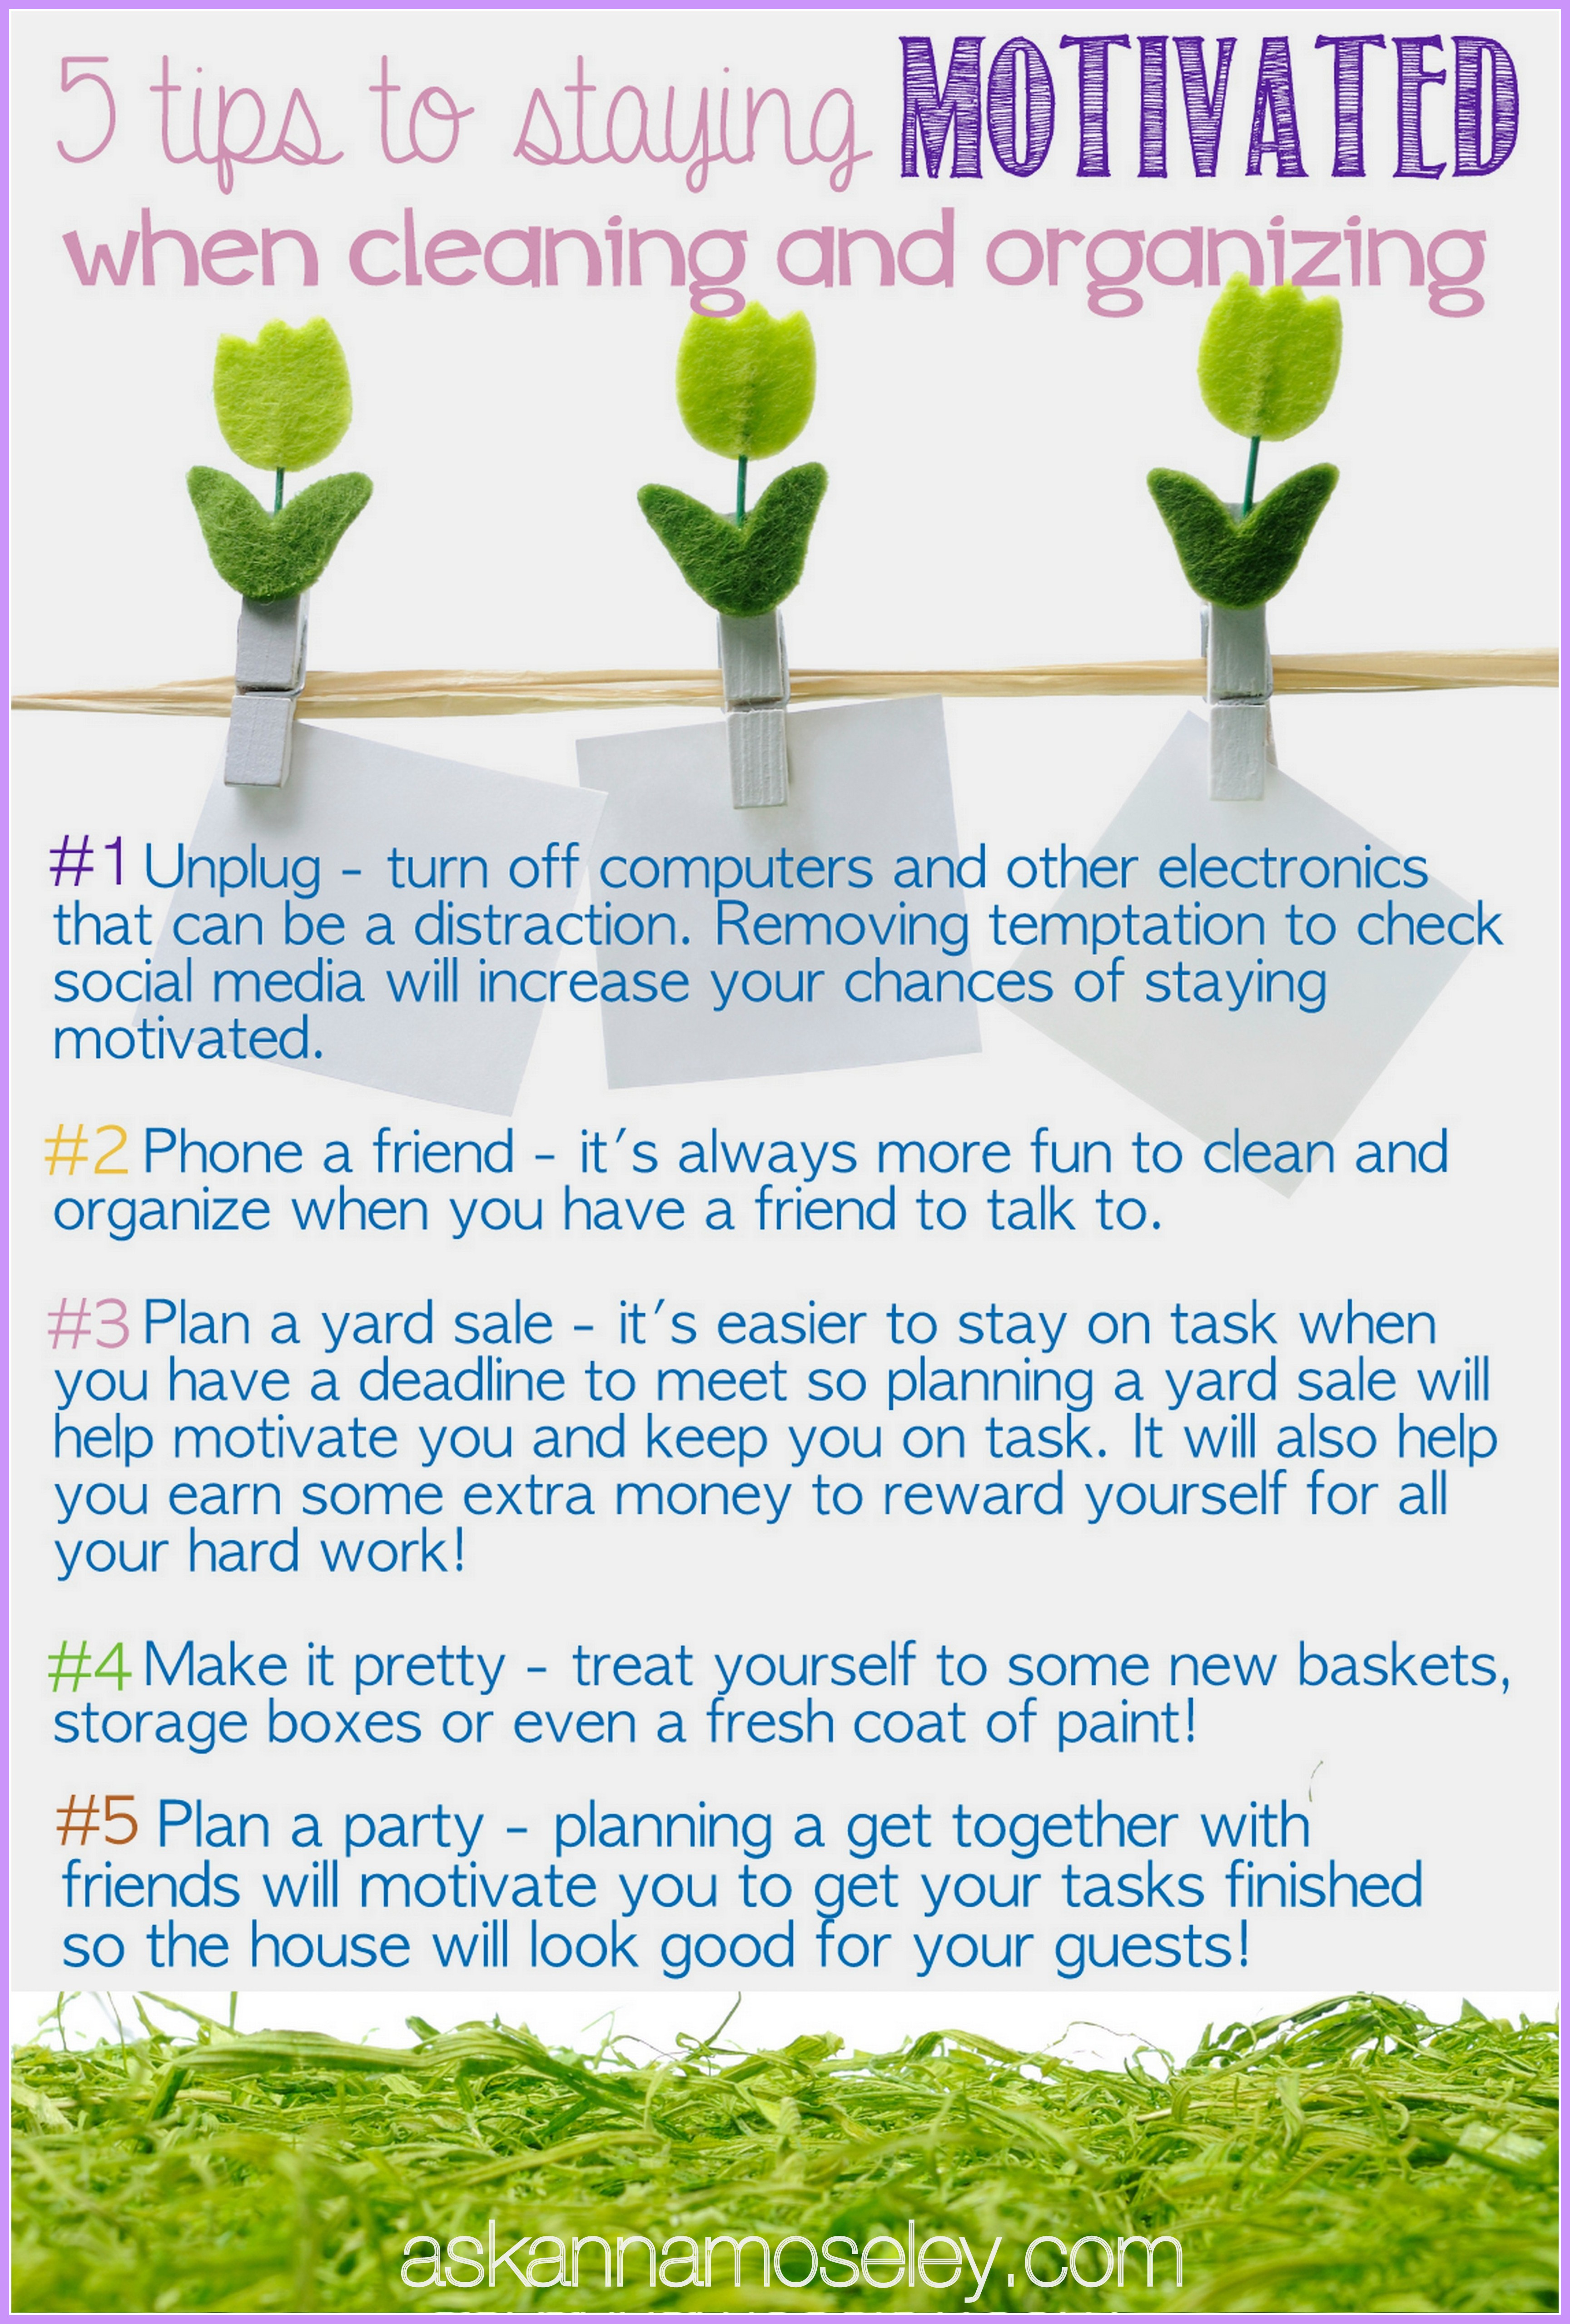 Tips for how to stay motivated while cleaning and organizing - Ask Anna